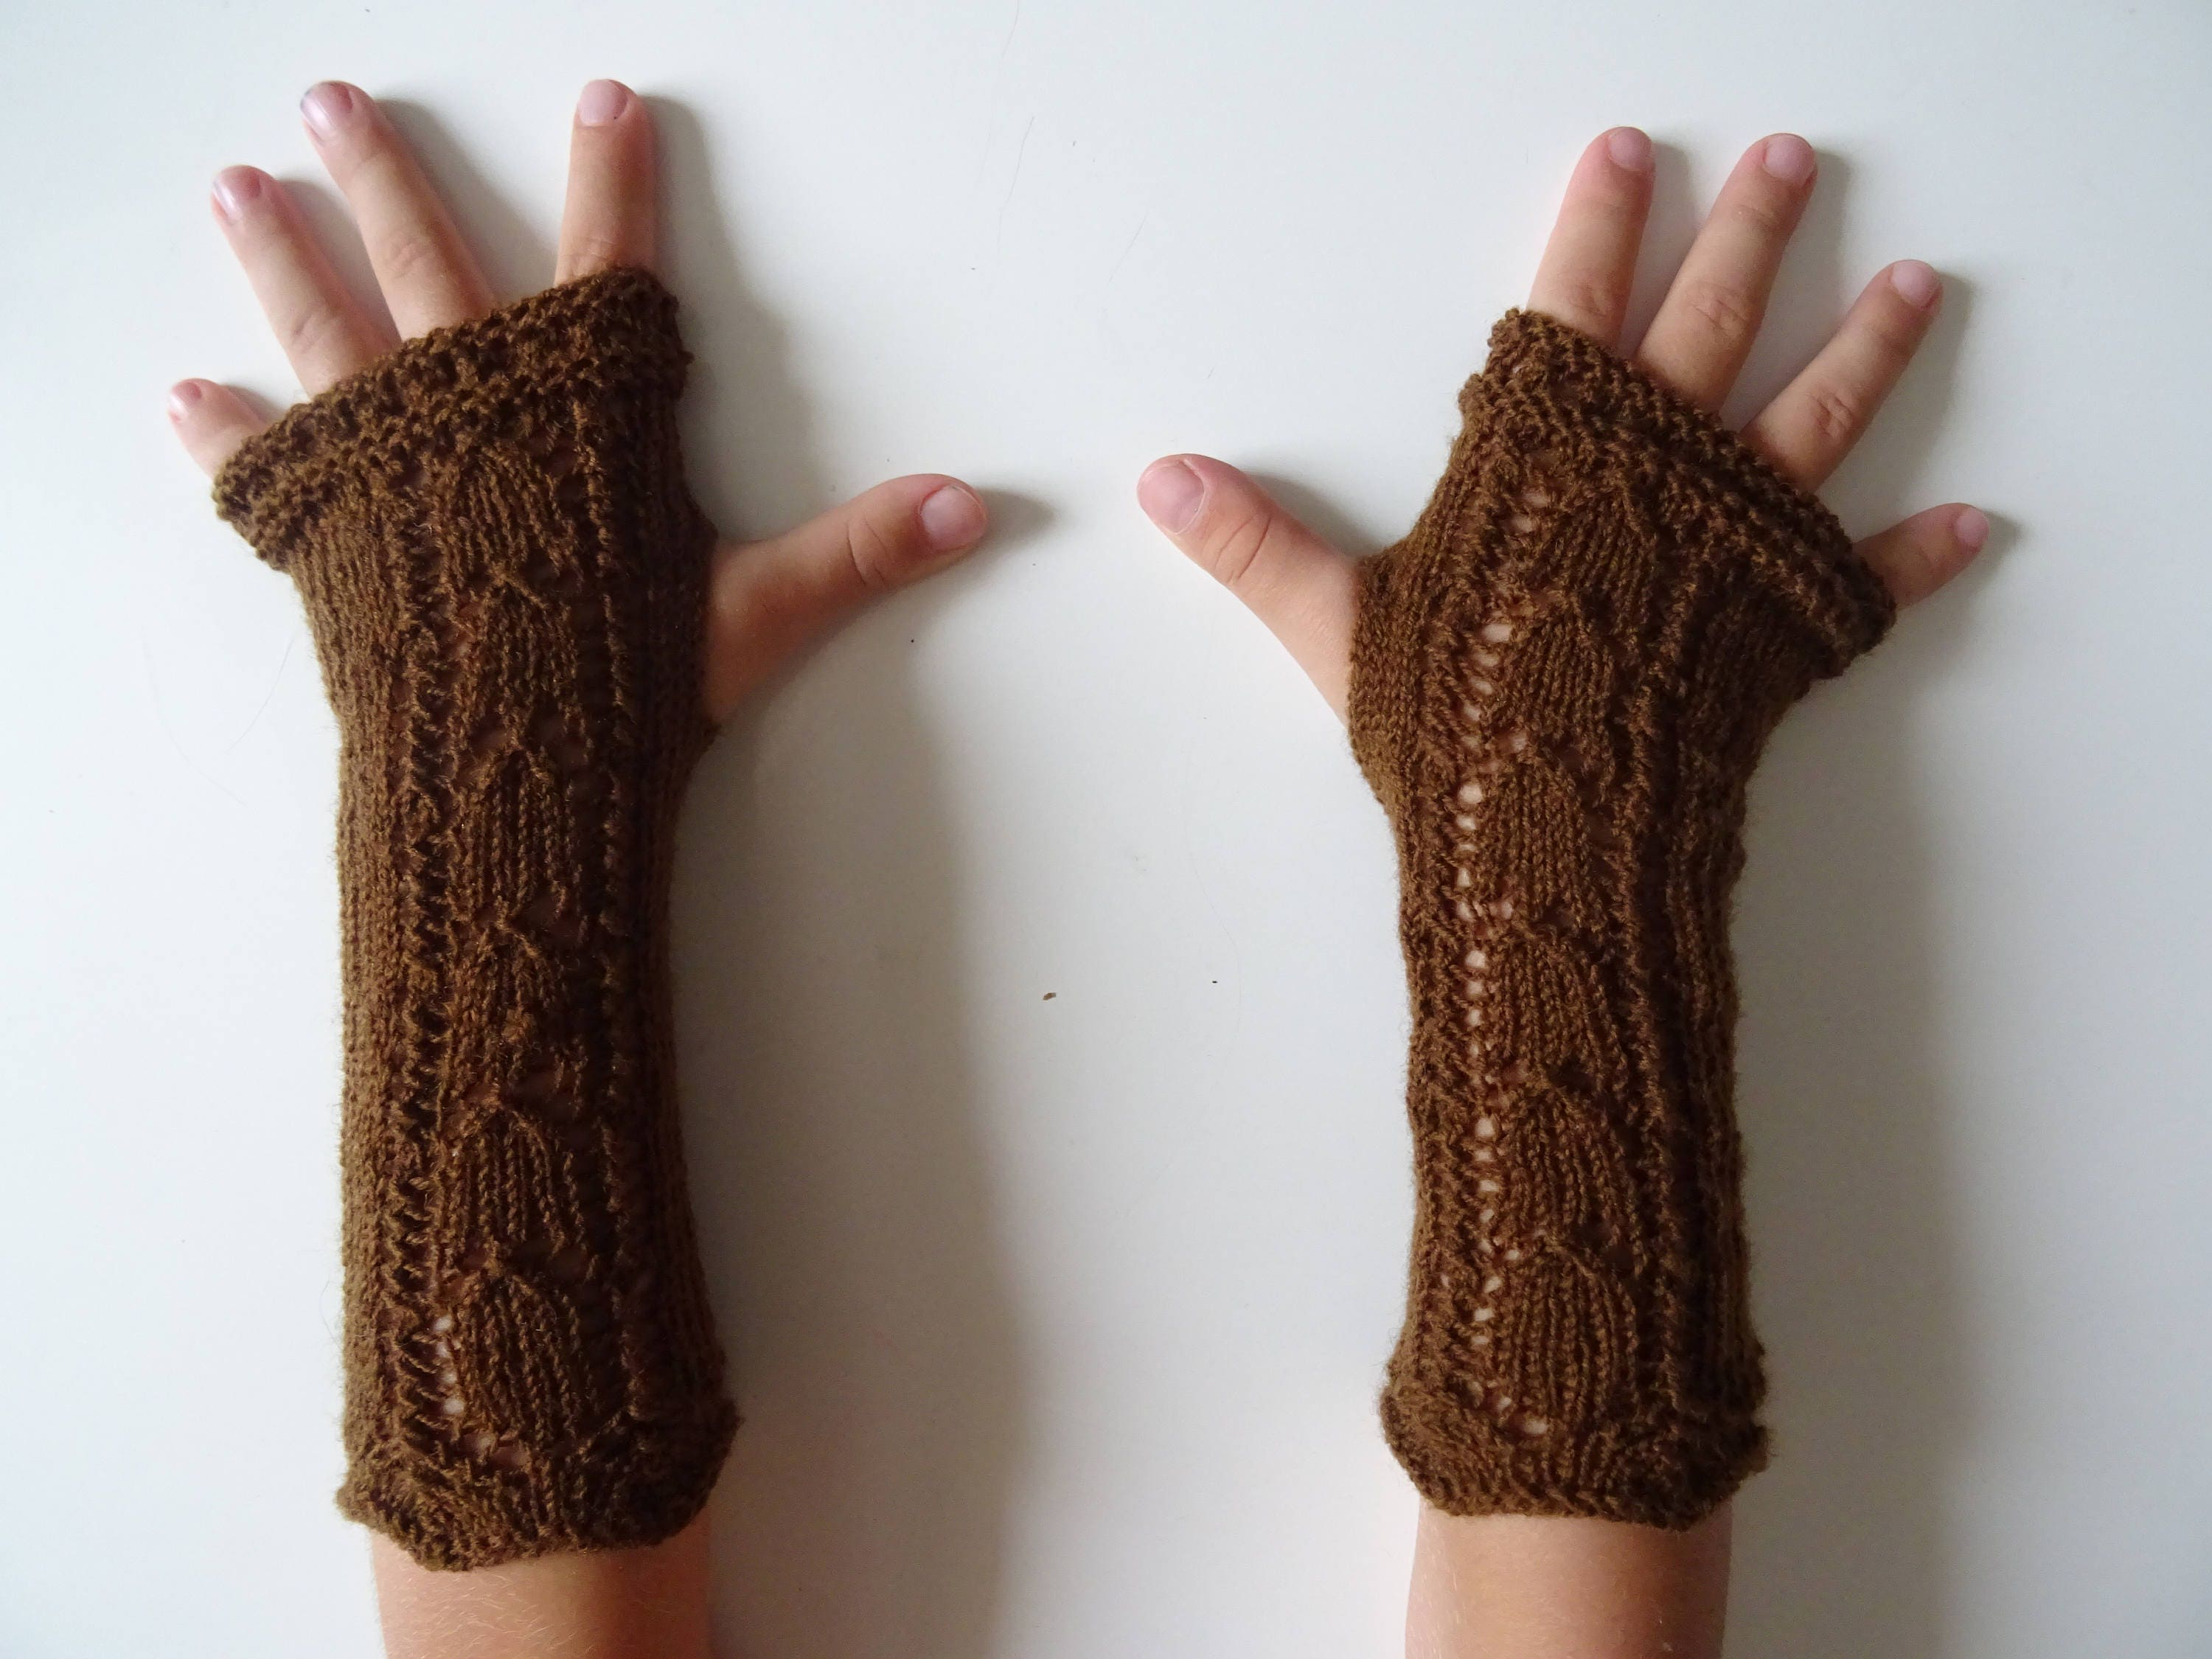 b375fdea3 Mittens for girls girl gloves lace decoration brown mitts | Etsy